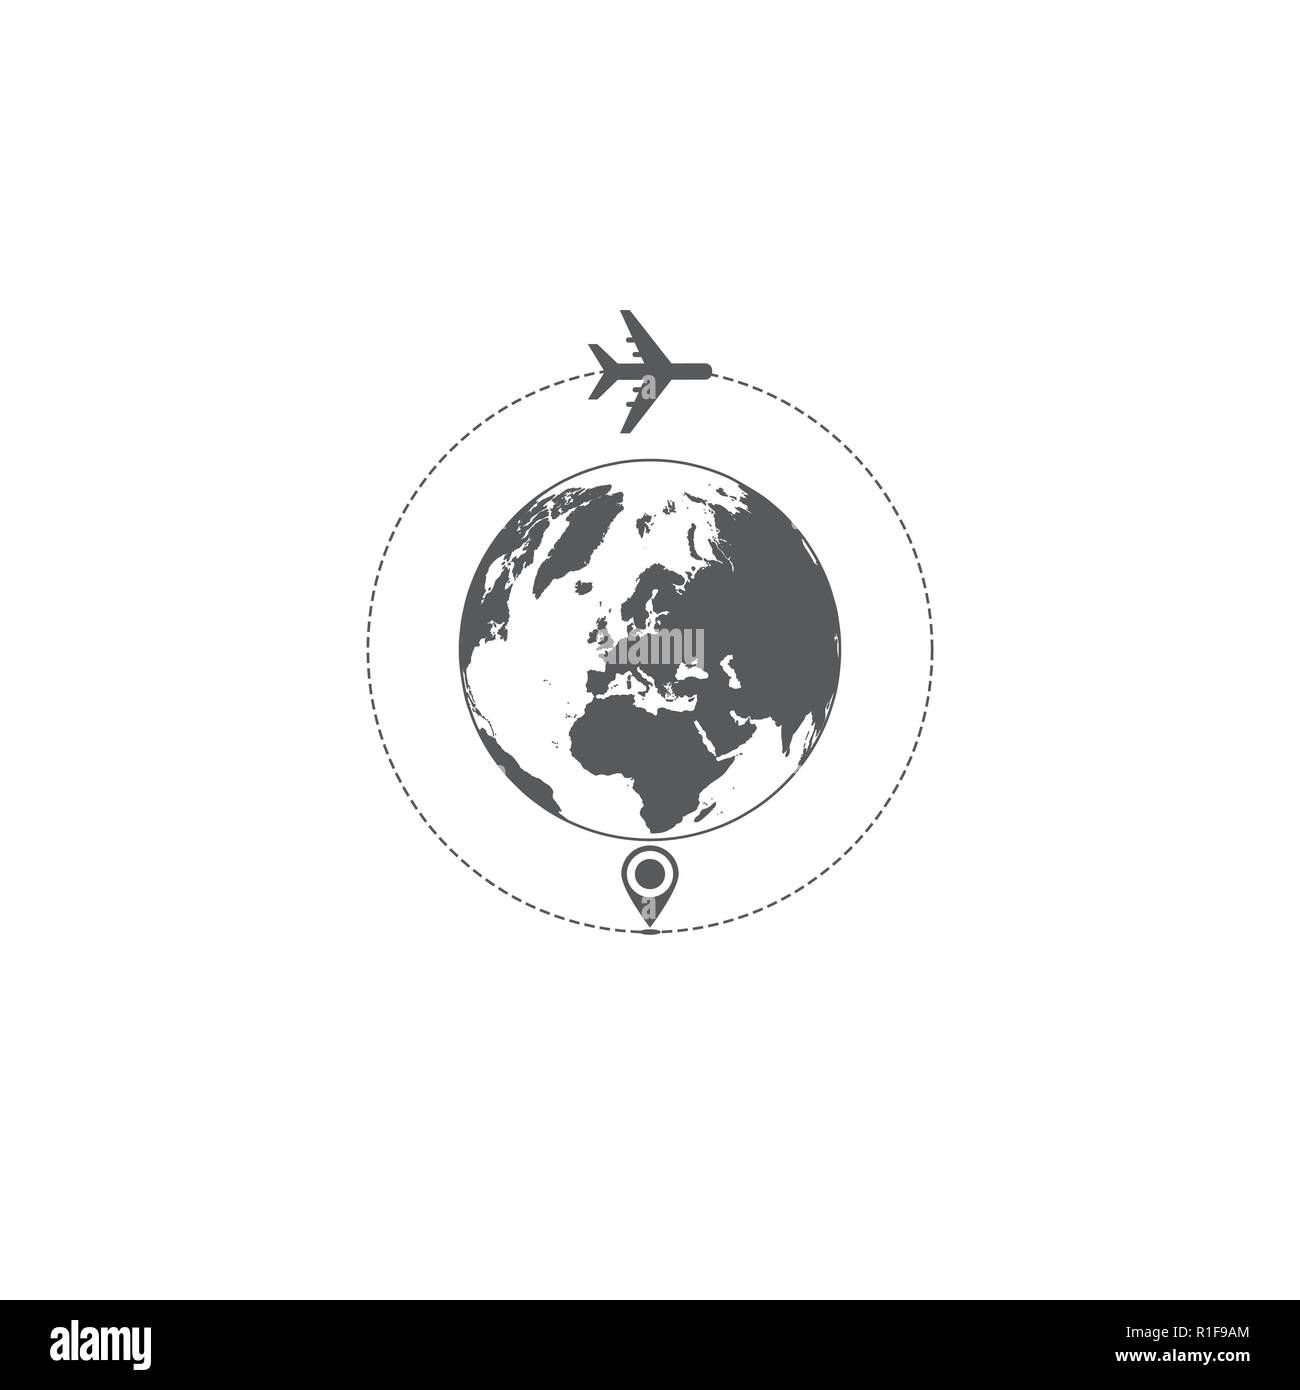 Gray world map and airplane silhouettes isolated on white background - Stock Image